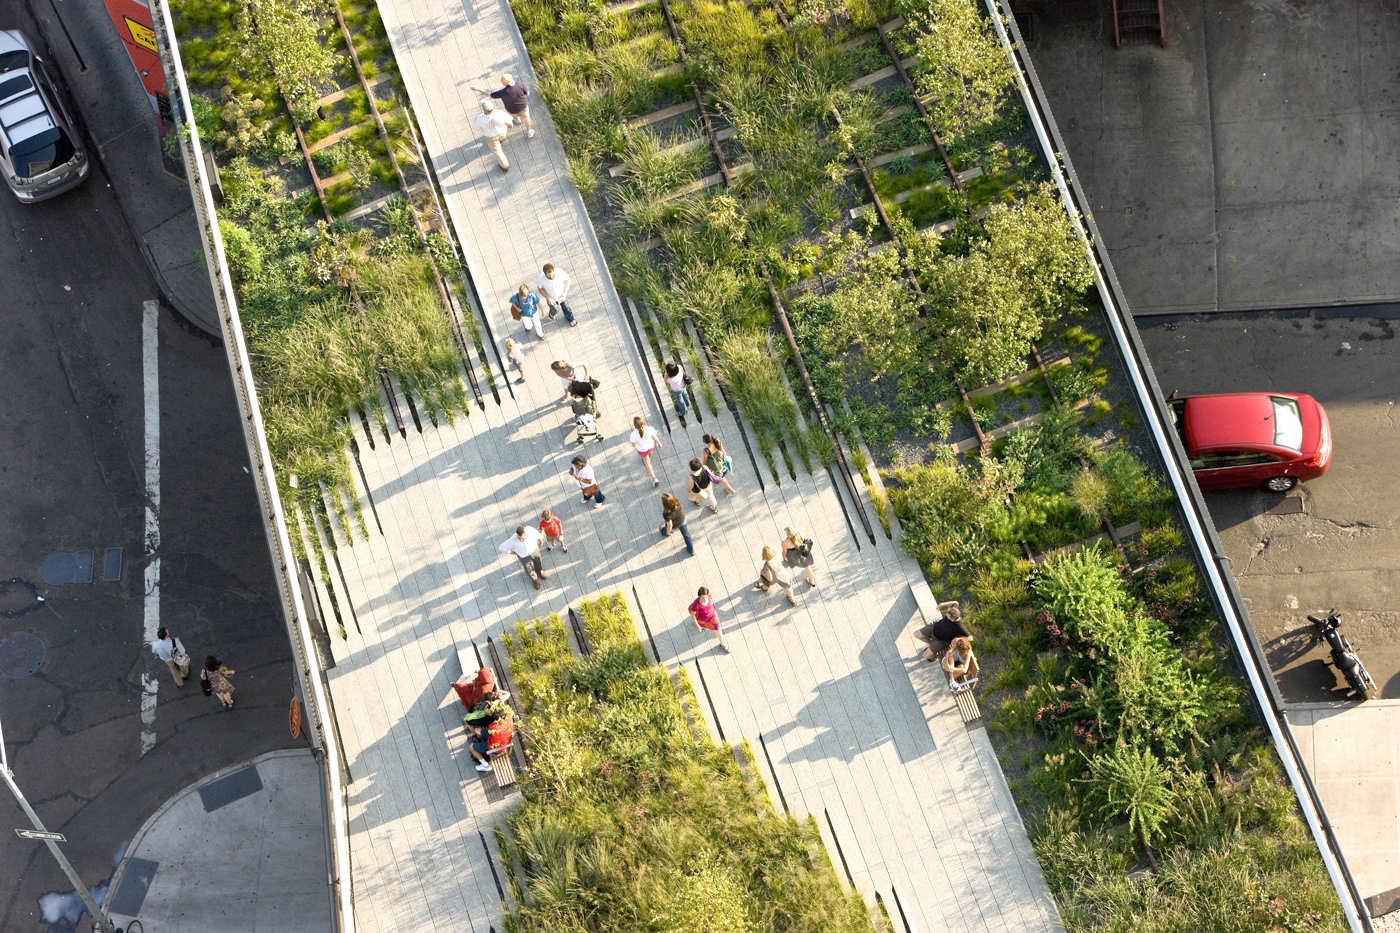 The New York City High Line: a converted elevated rail system now boasting a verdant, green walkway snaking through the harsh urban landscape while also helping to collect and retain storm water.